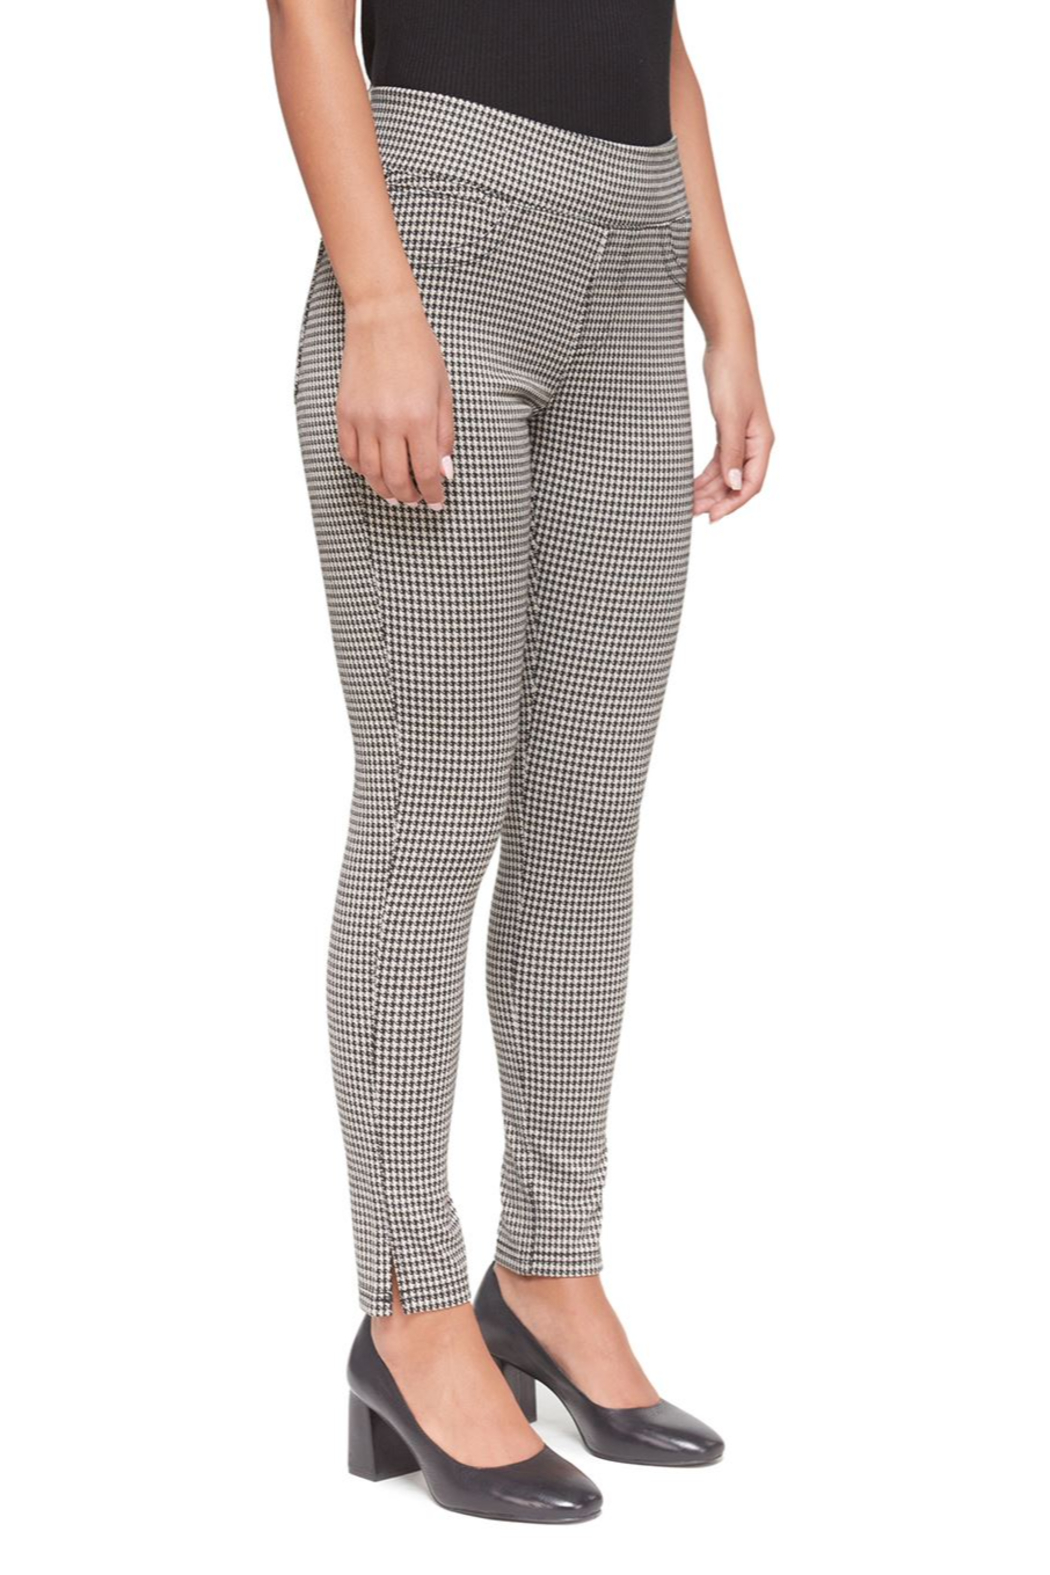 Lola Jeans Anna Houndstooth Jacquard Mid Rise Pant - Front Full Image